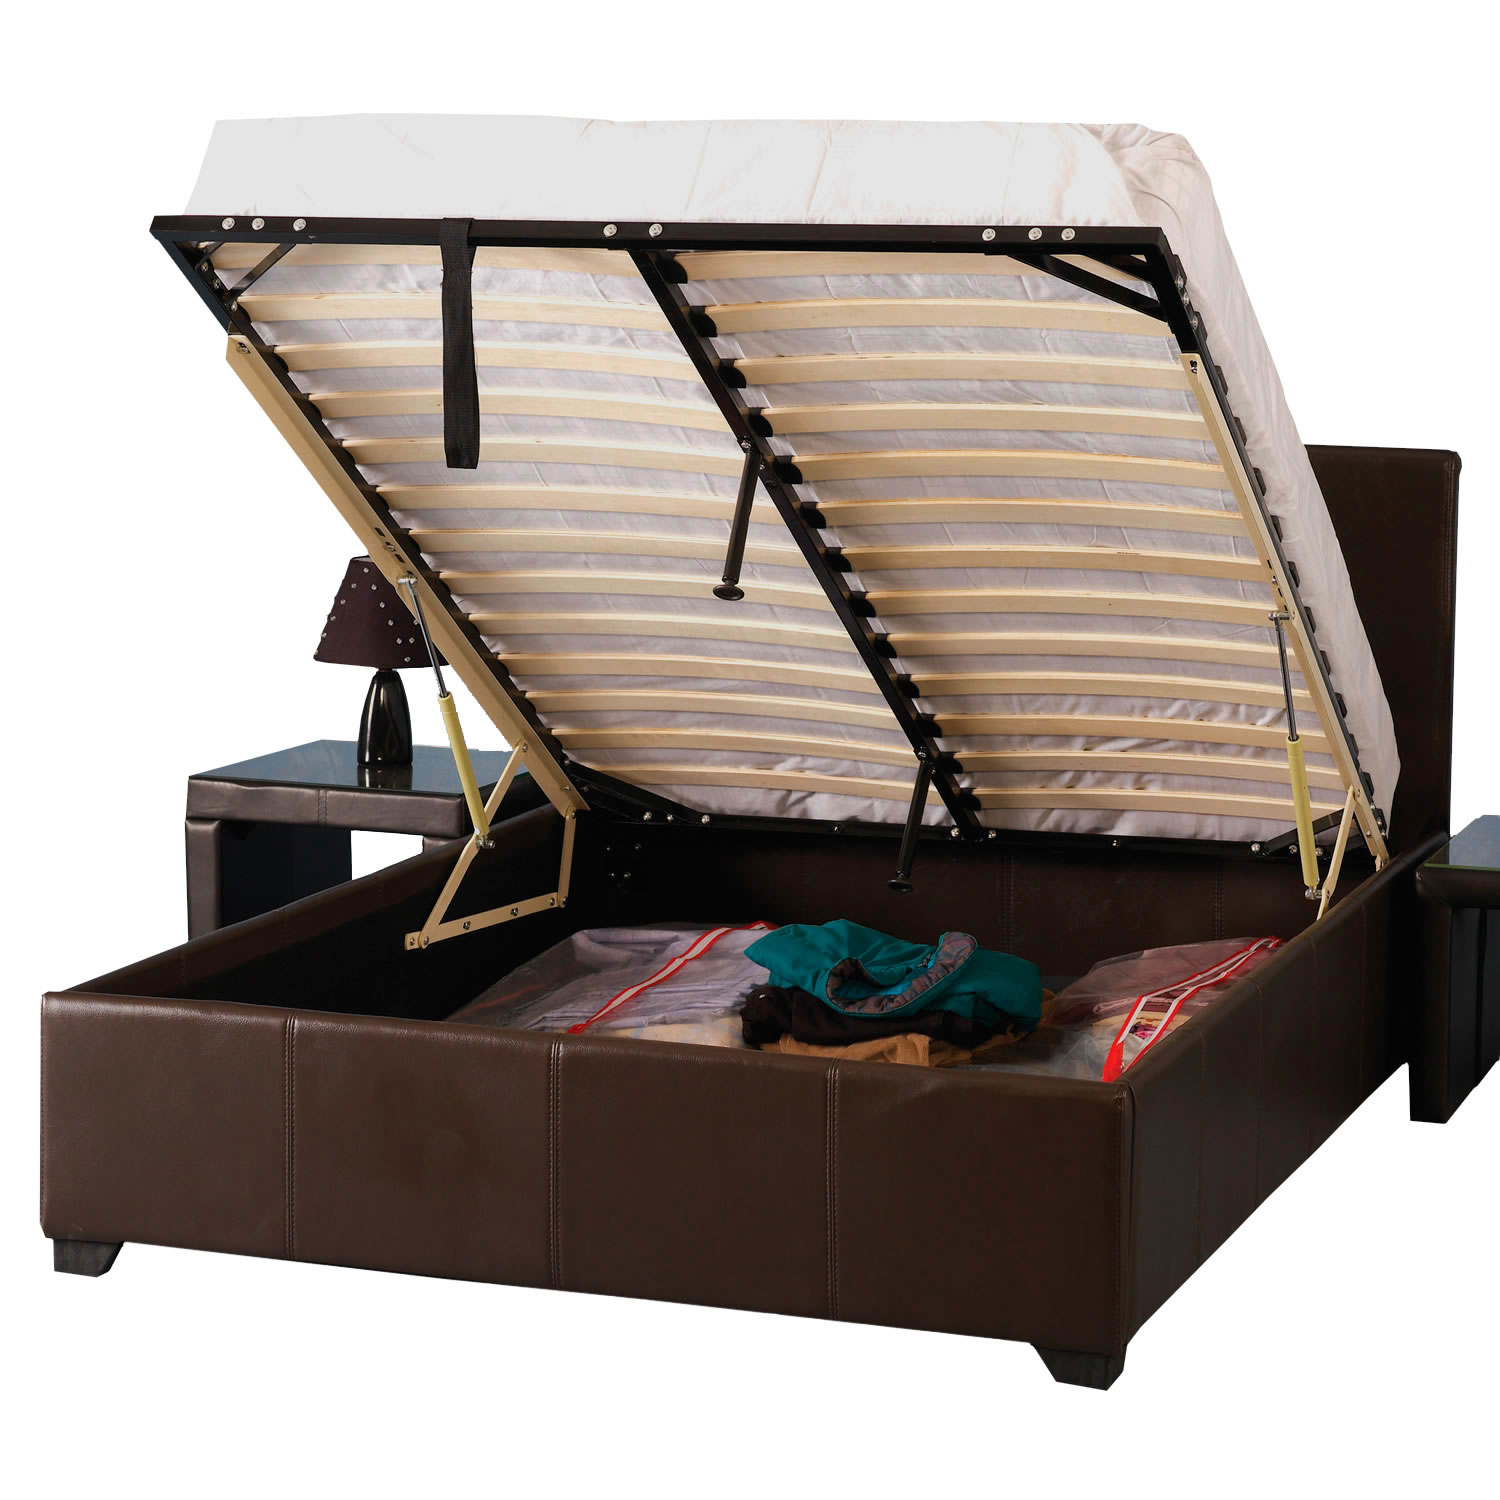 Image of: Bed Frames With Storage Amazon